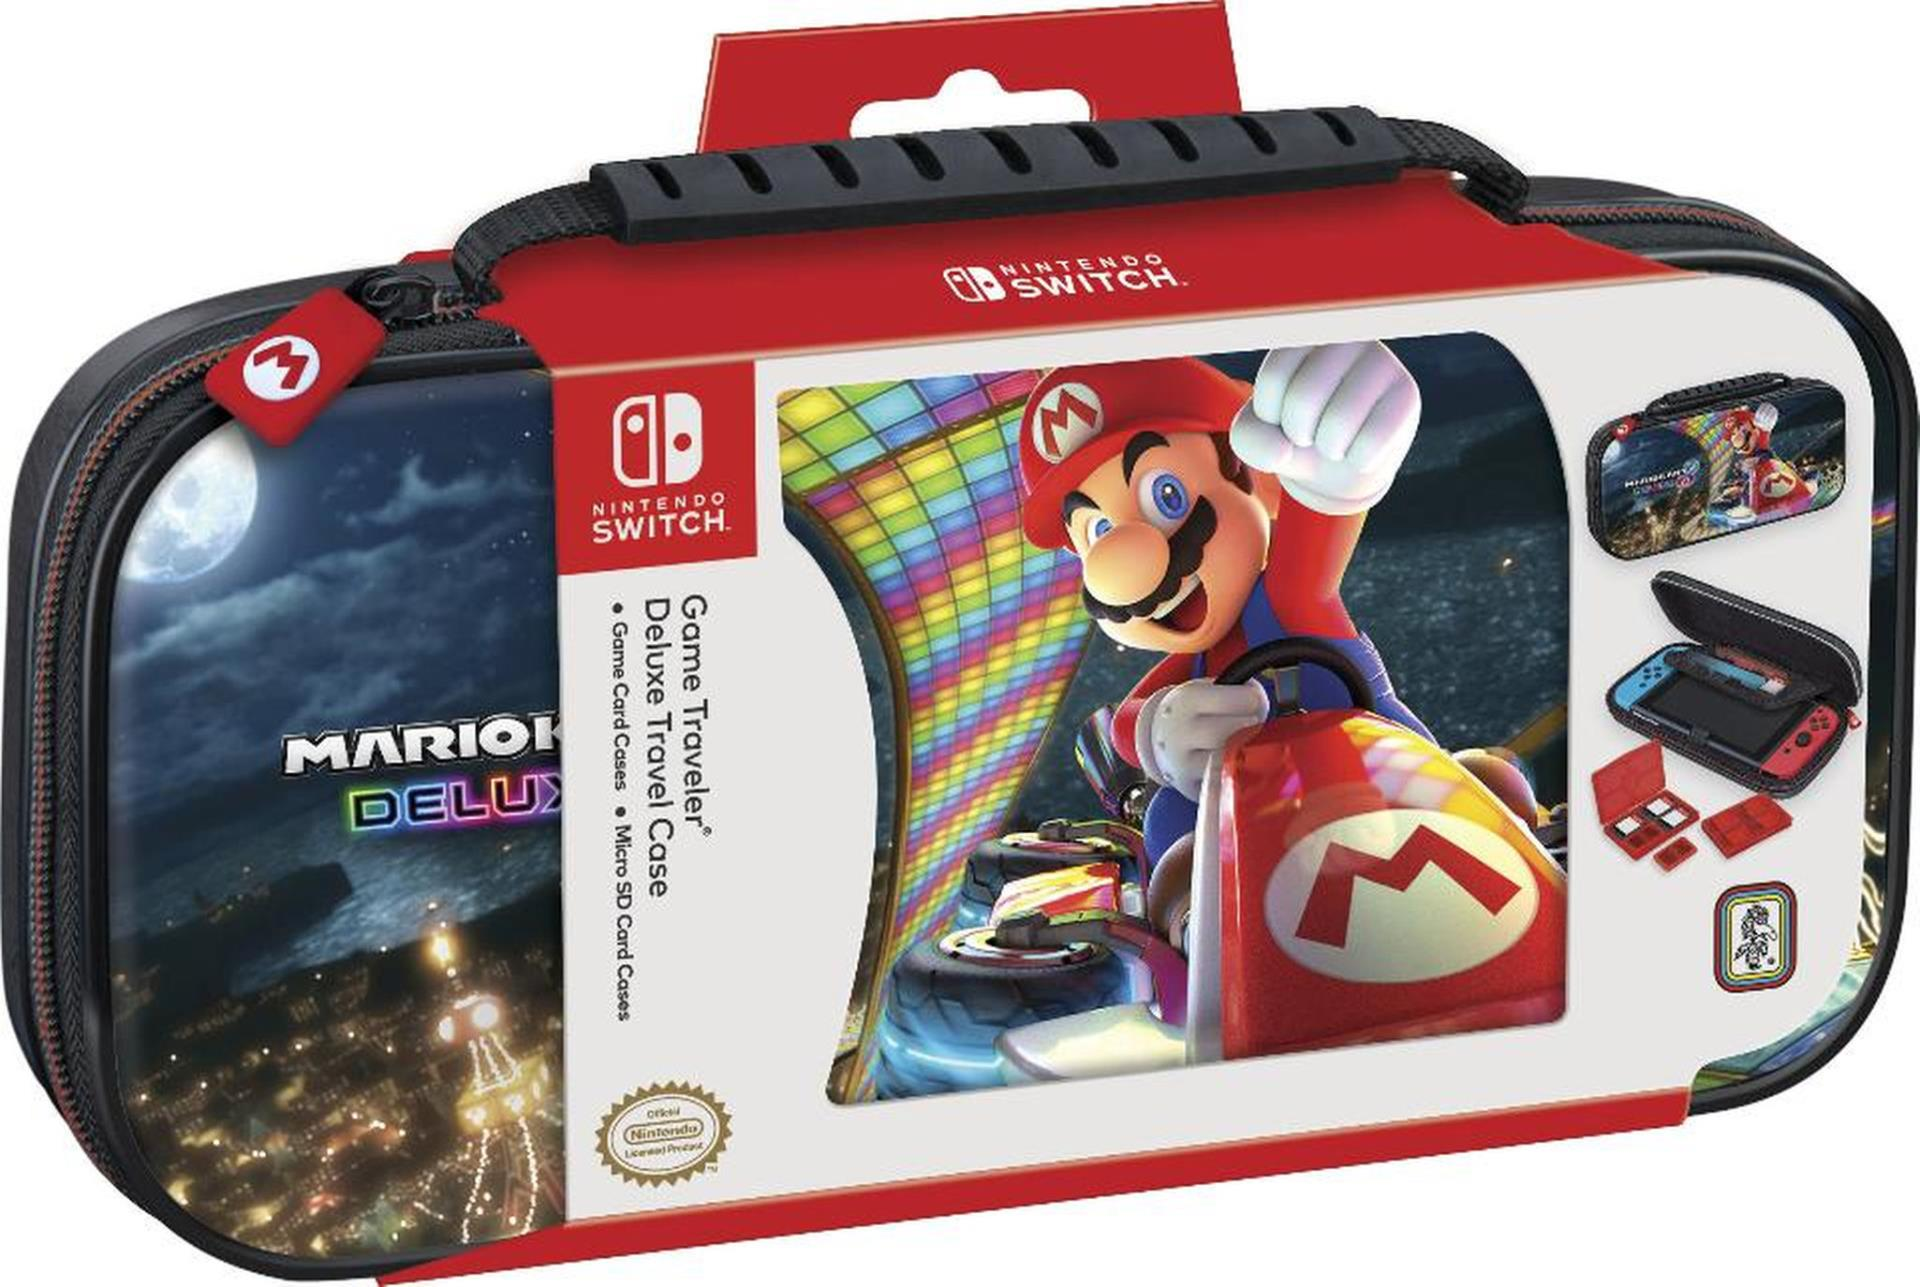 Mario Kart 8 Deluxe Nintendo Switch Travel Case